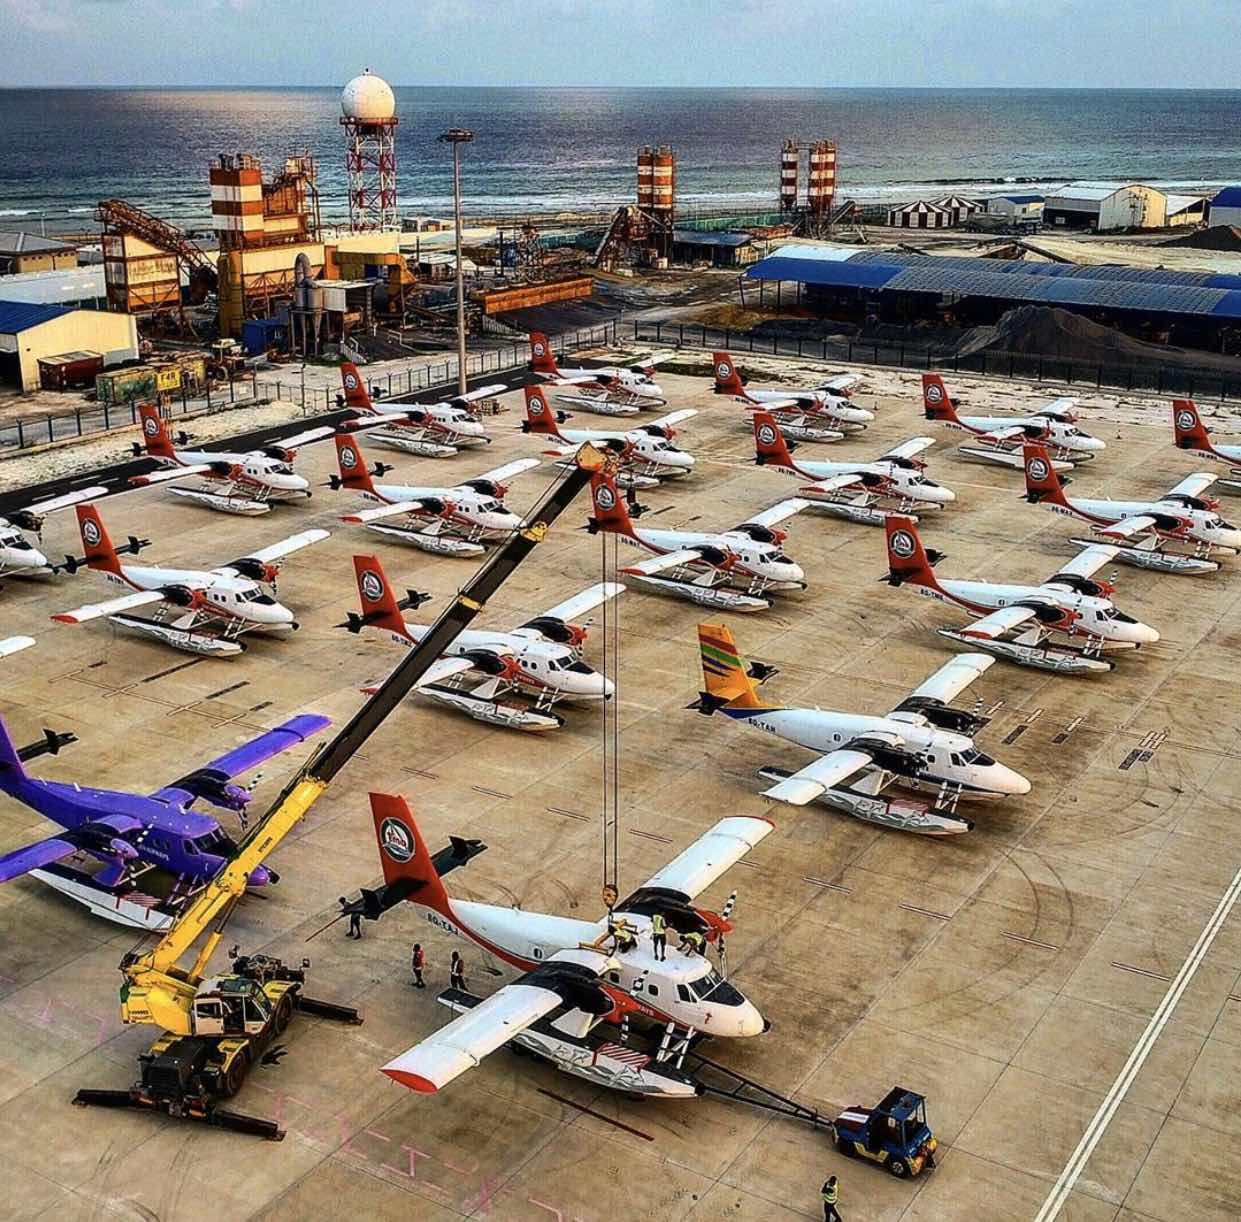 COVID19- Seaplanes Stored as Air Travel Stops